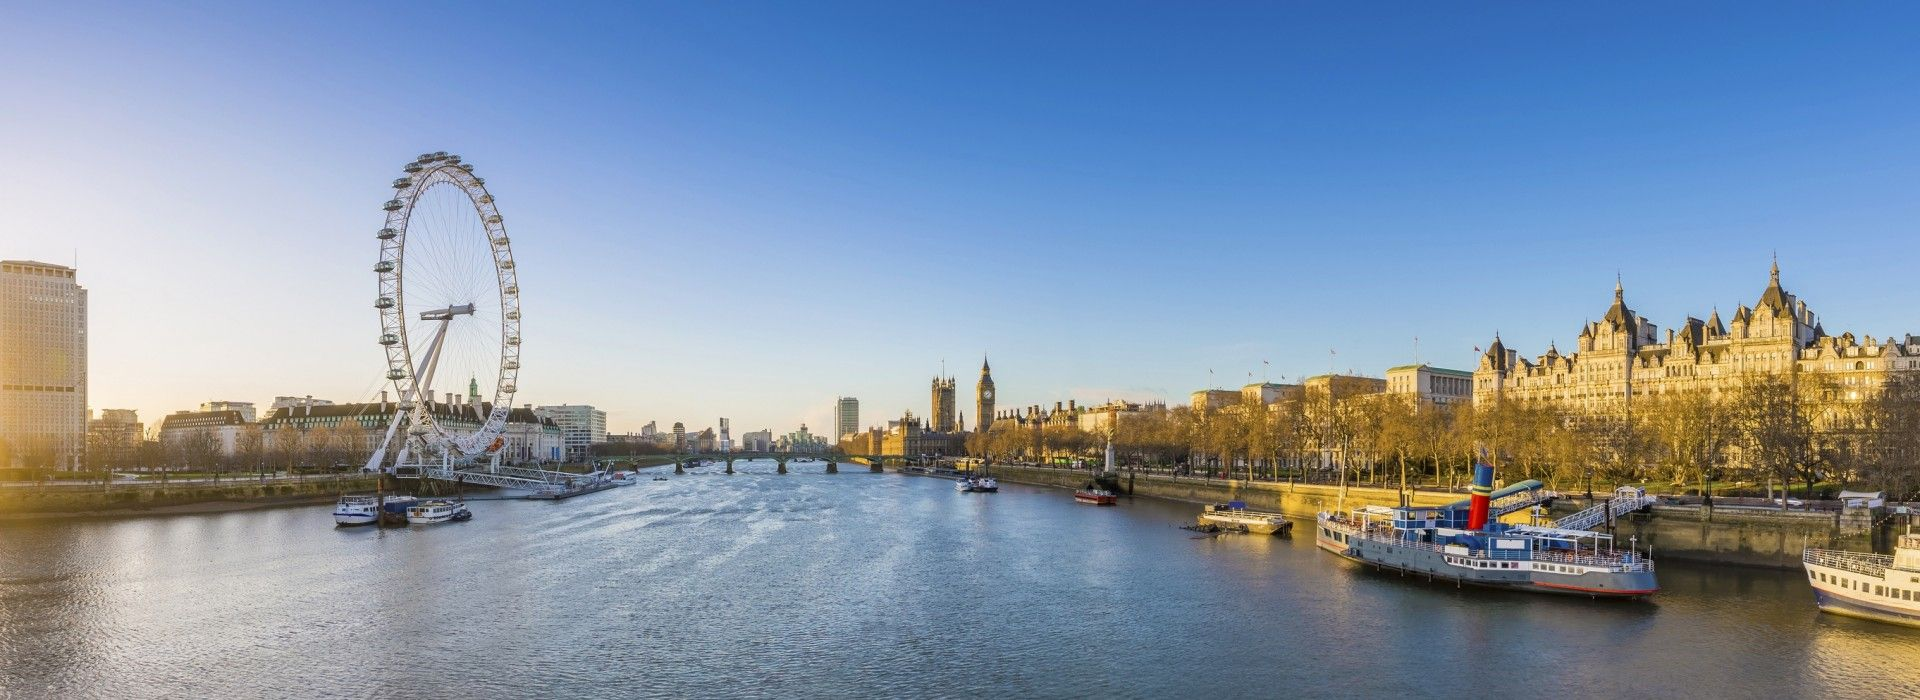 City sightseeing Tours in London